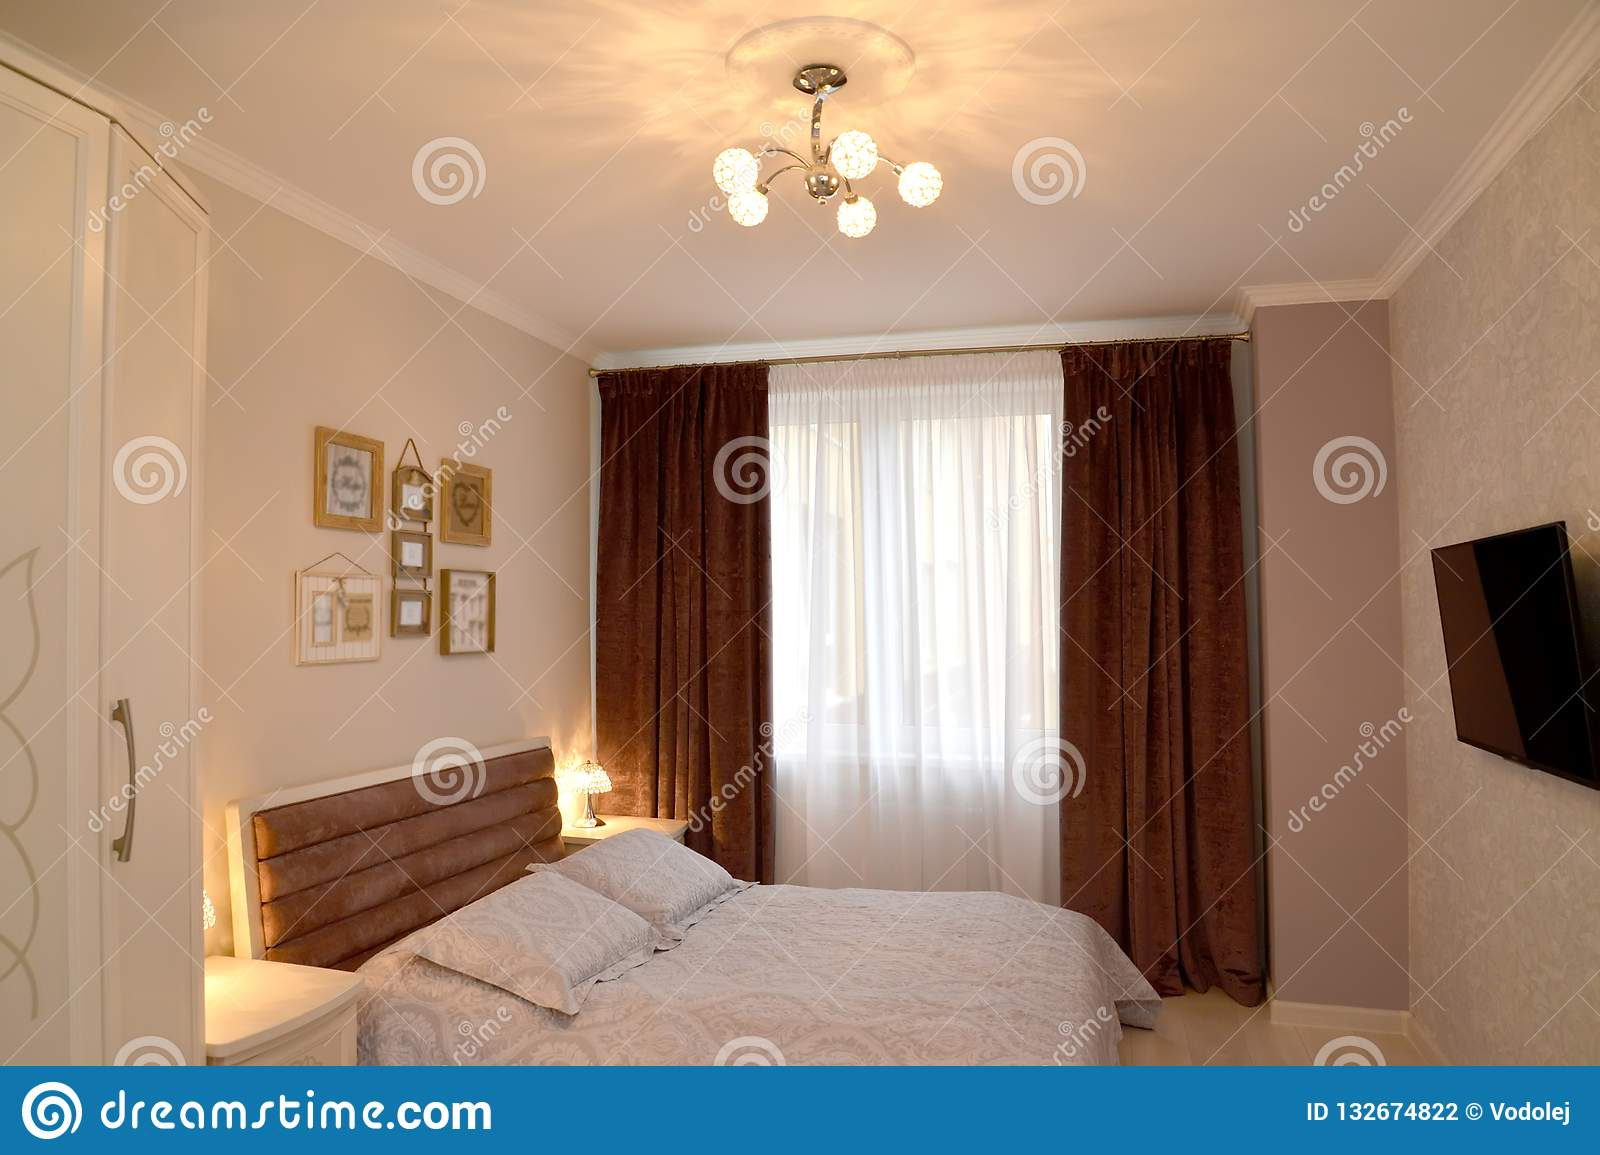 Bedroom Interior With Lighting And The Tv On A Wall Scandinavian Style Stock Photo Image Of Laminate Light 132674822